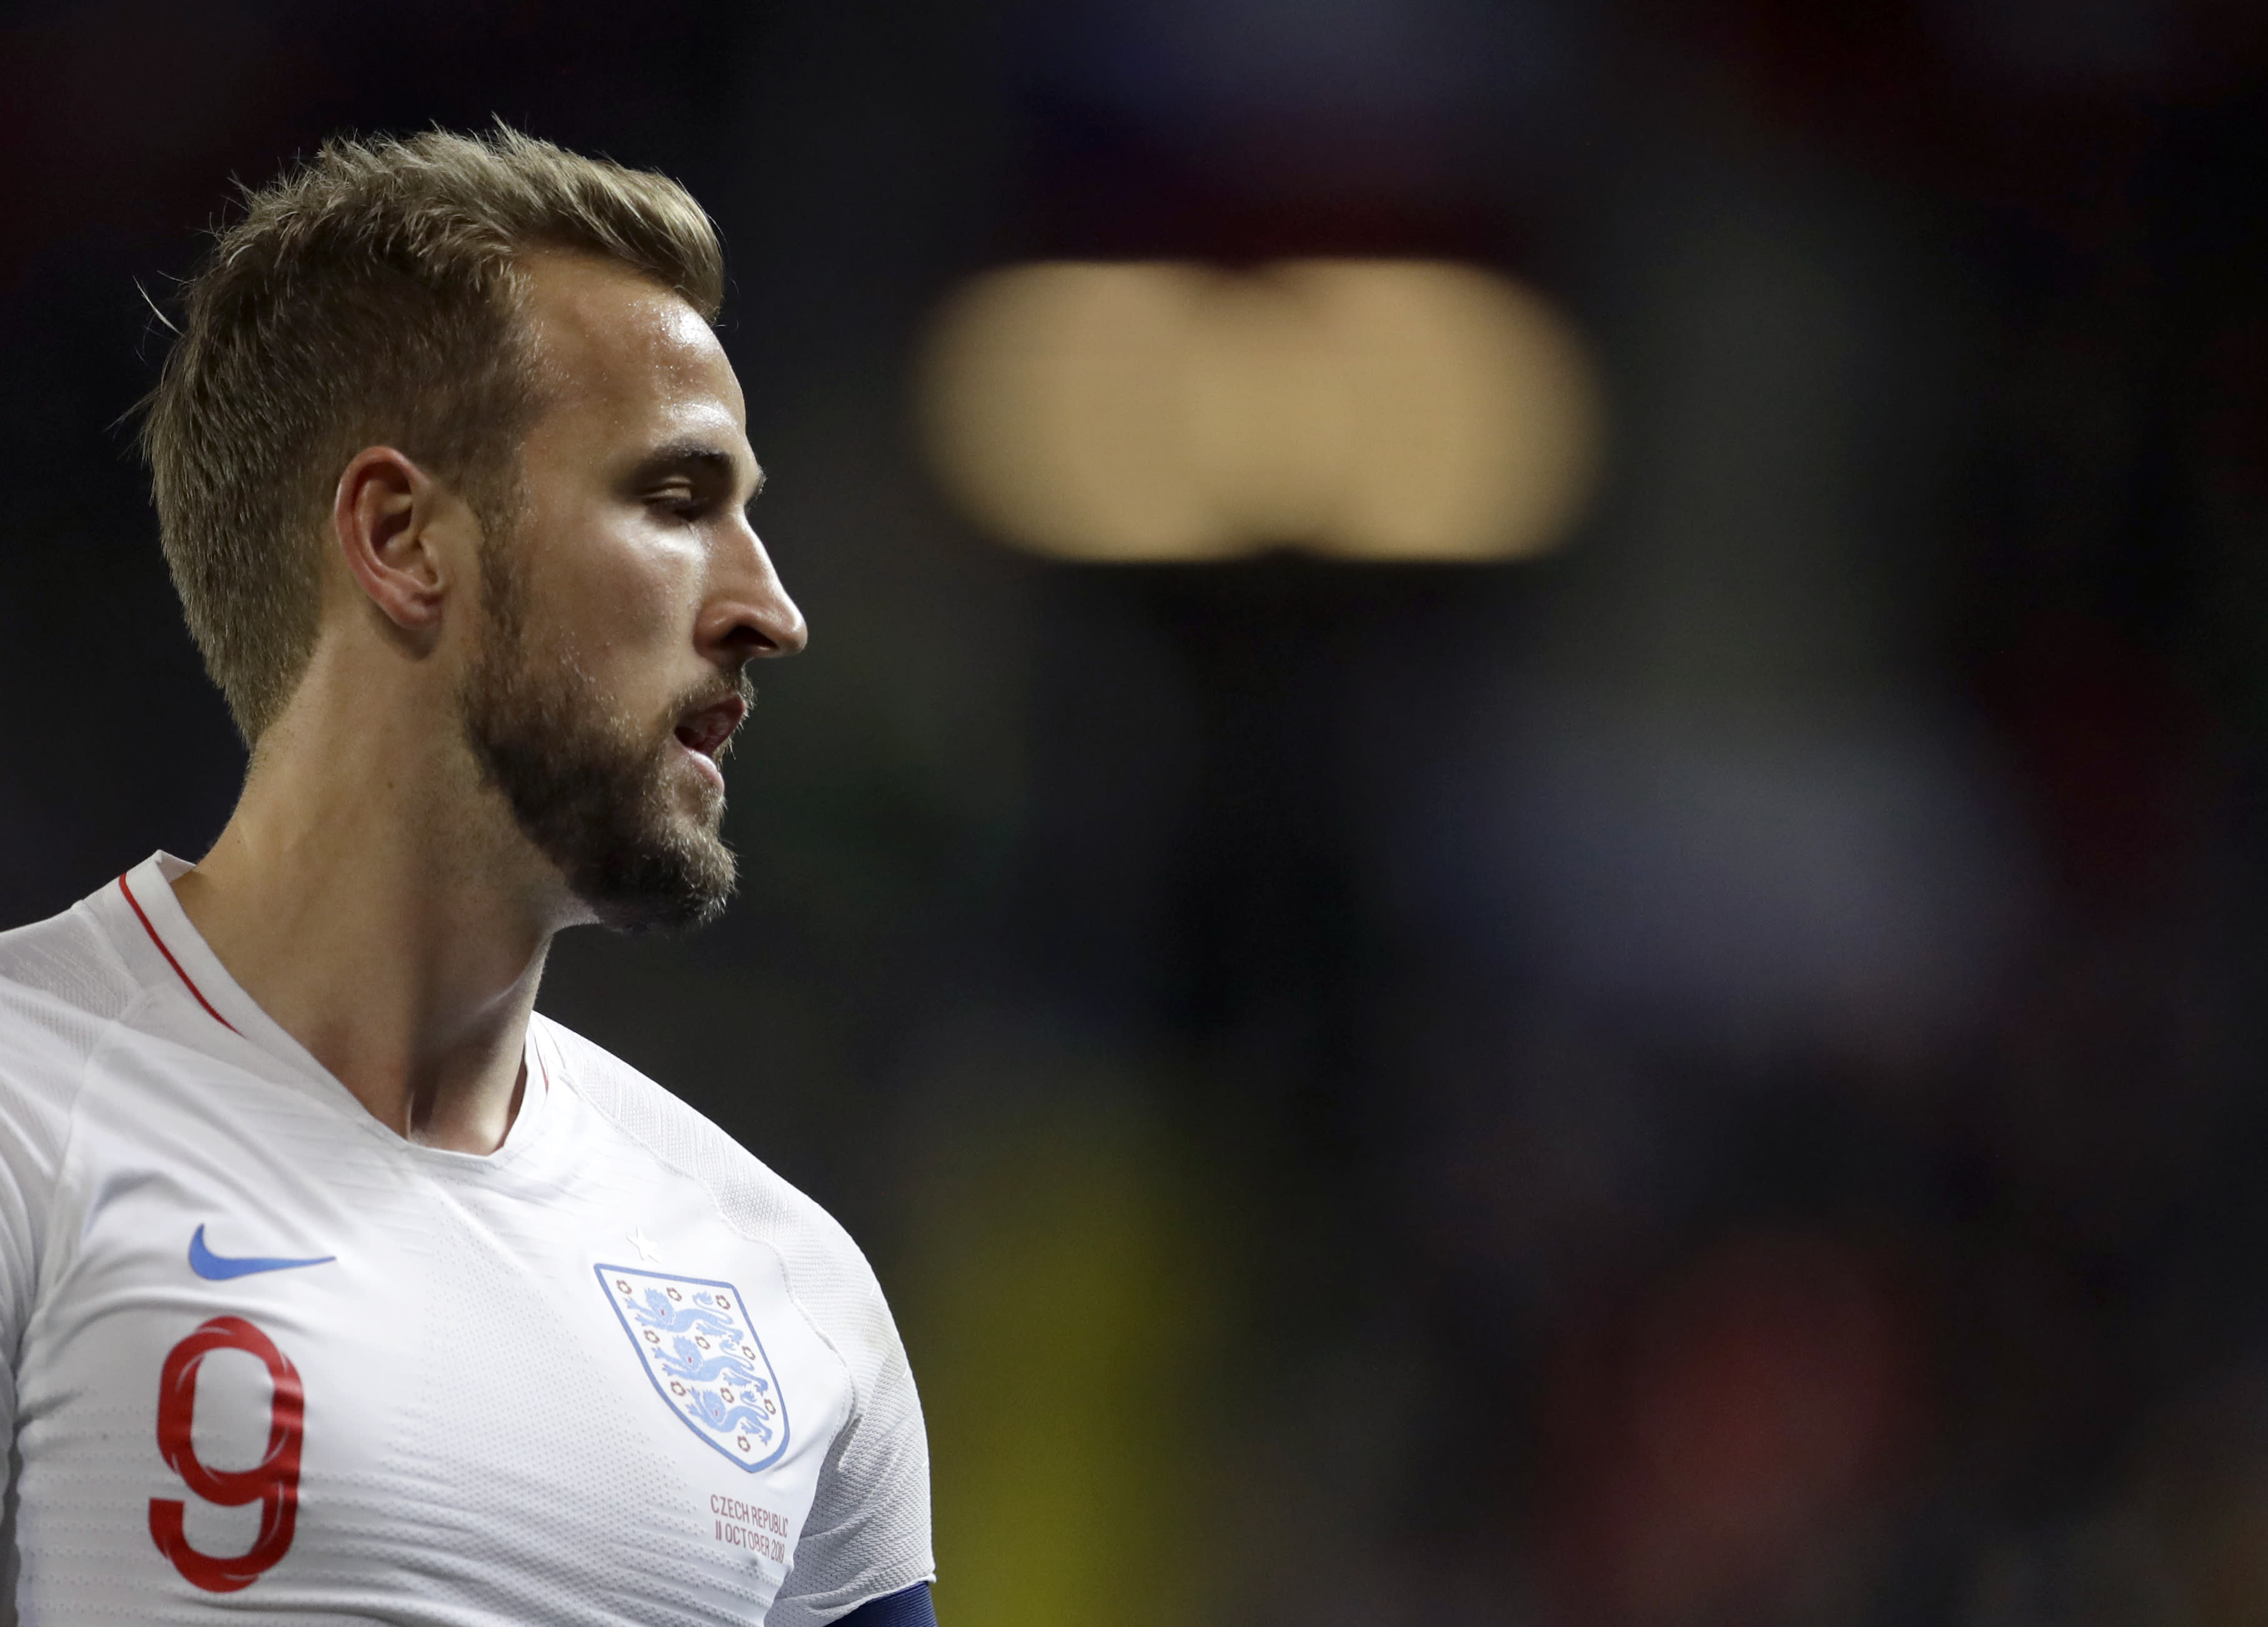 England's Harry Kane looks out during the Euro 2020 group A qualifying soccer match between Czech Republic and England at the Sinobo stadium in Prague, Czech Republic, Friday, Oct. 11, 2019. (AP Photo/Petr David Josek)